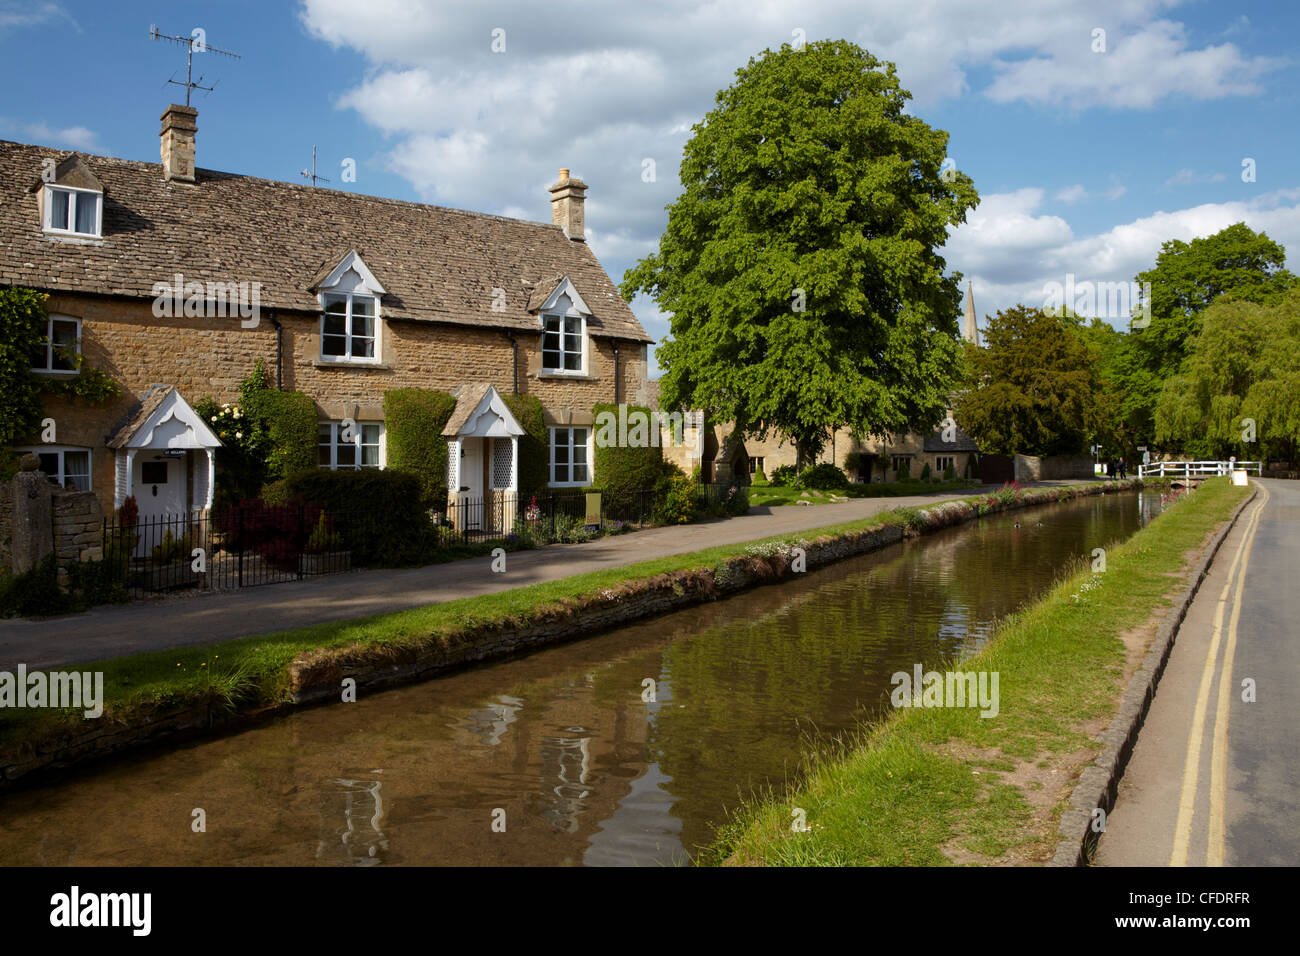 A summer day at the Cotswolld village of Lower Slaughter, Gloucestershire, The Cotswolds, England, United Kingdom, - Stock Image